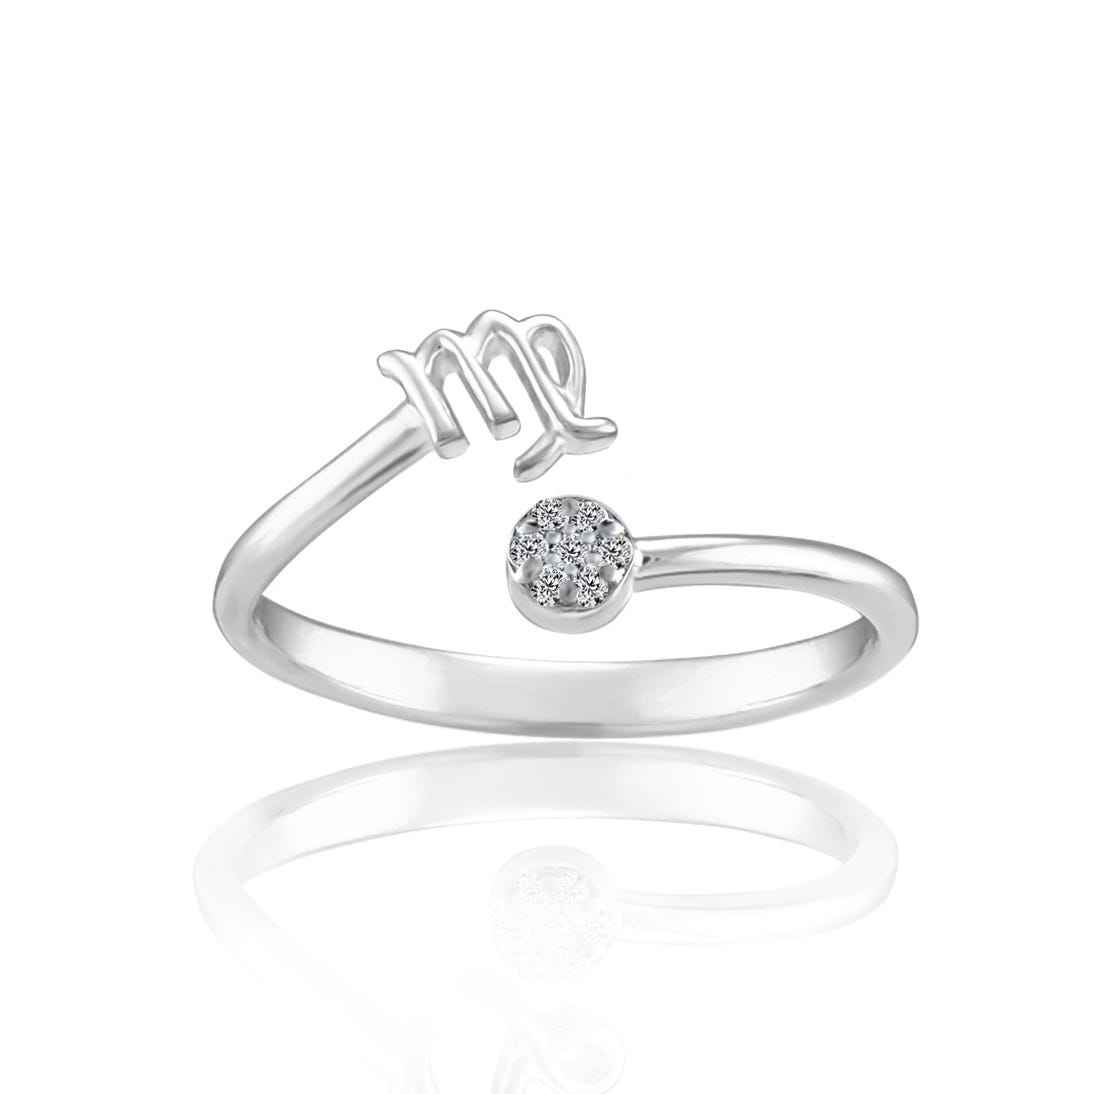 Zodiac Diamond Virgo Fashion Ring in Sterling Silver